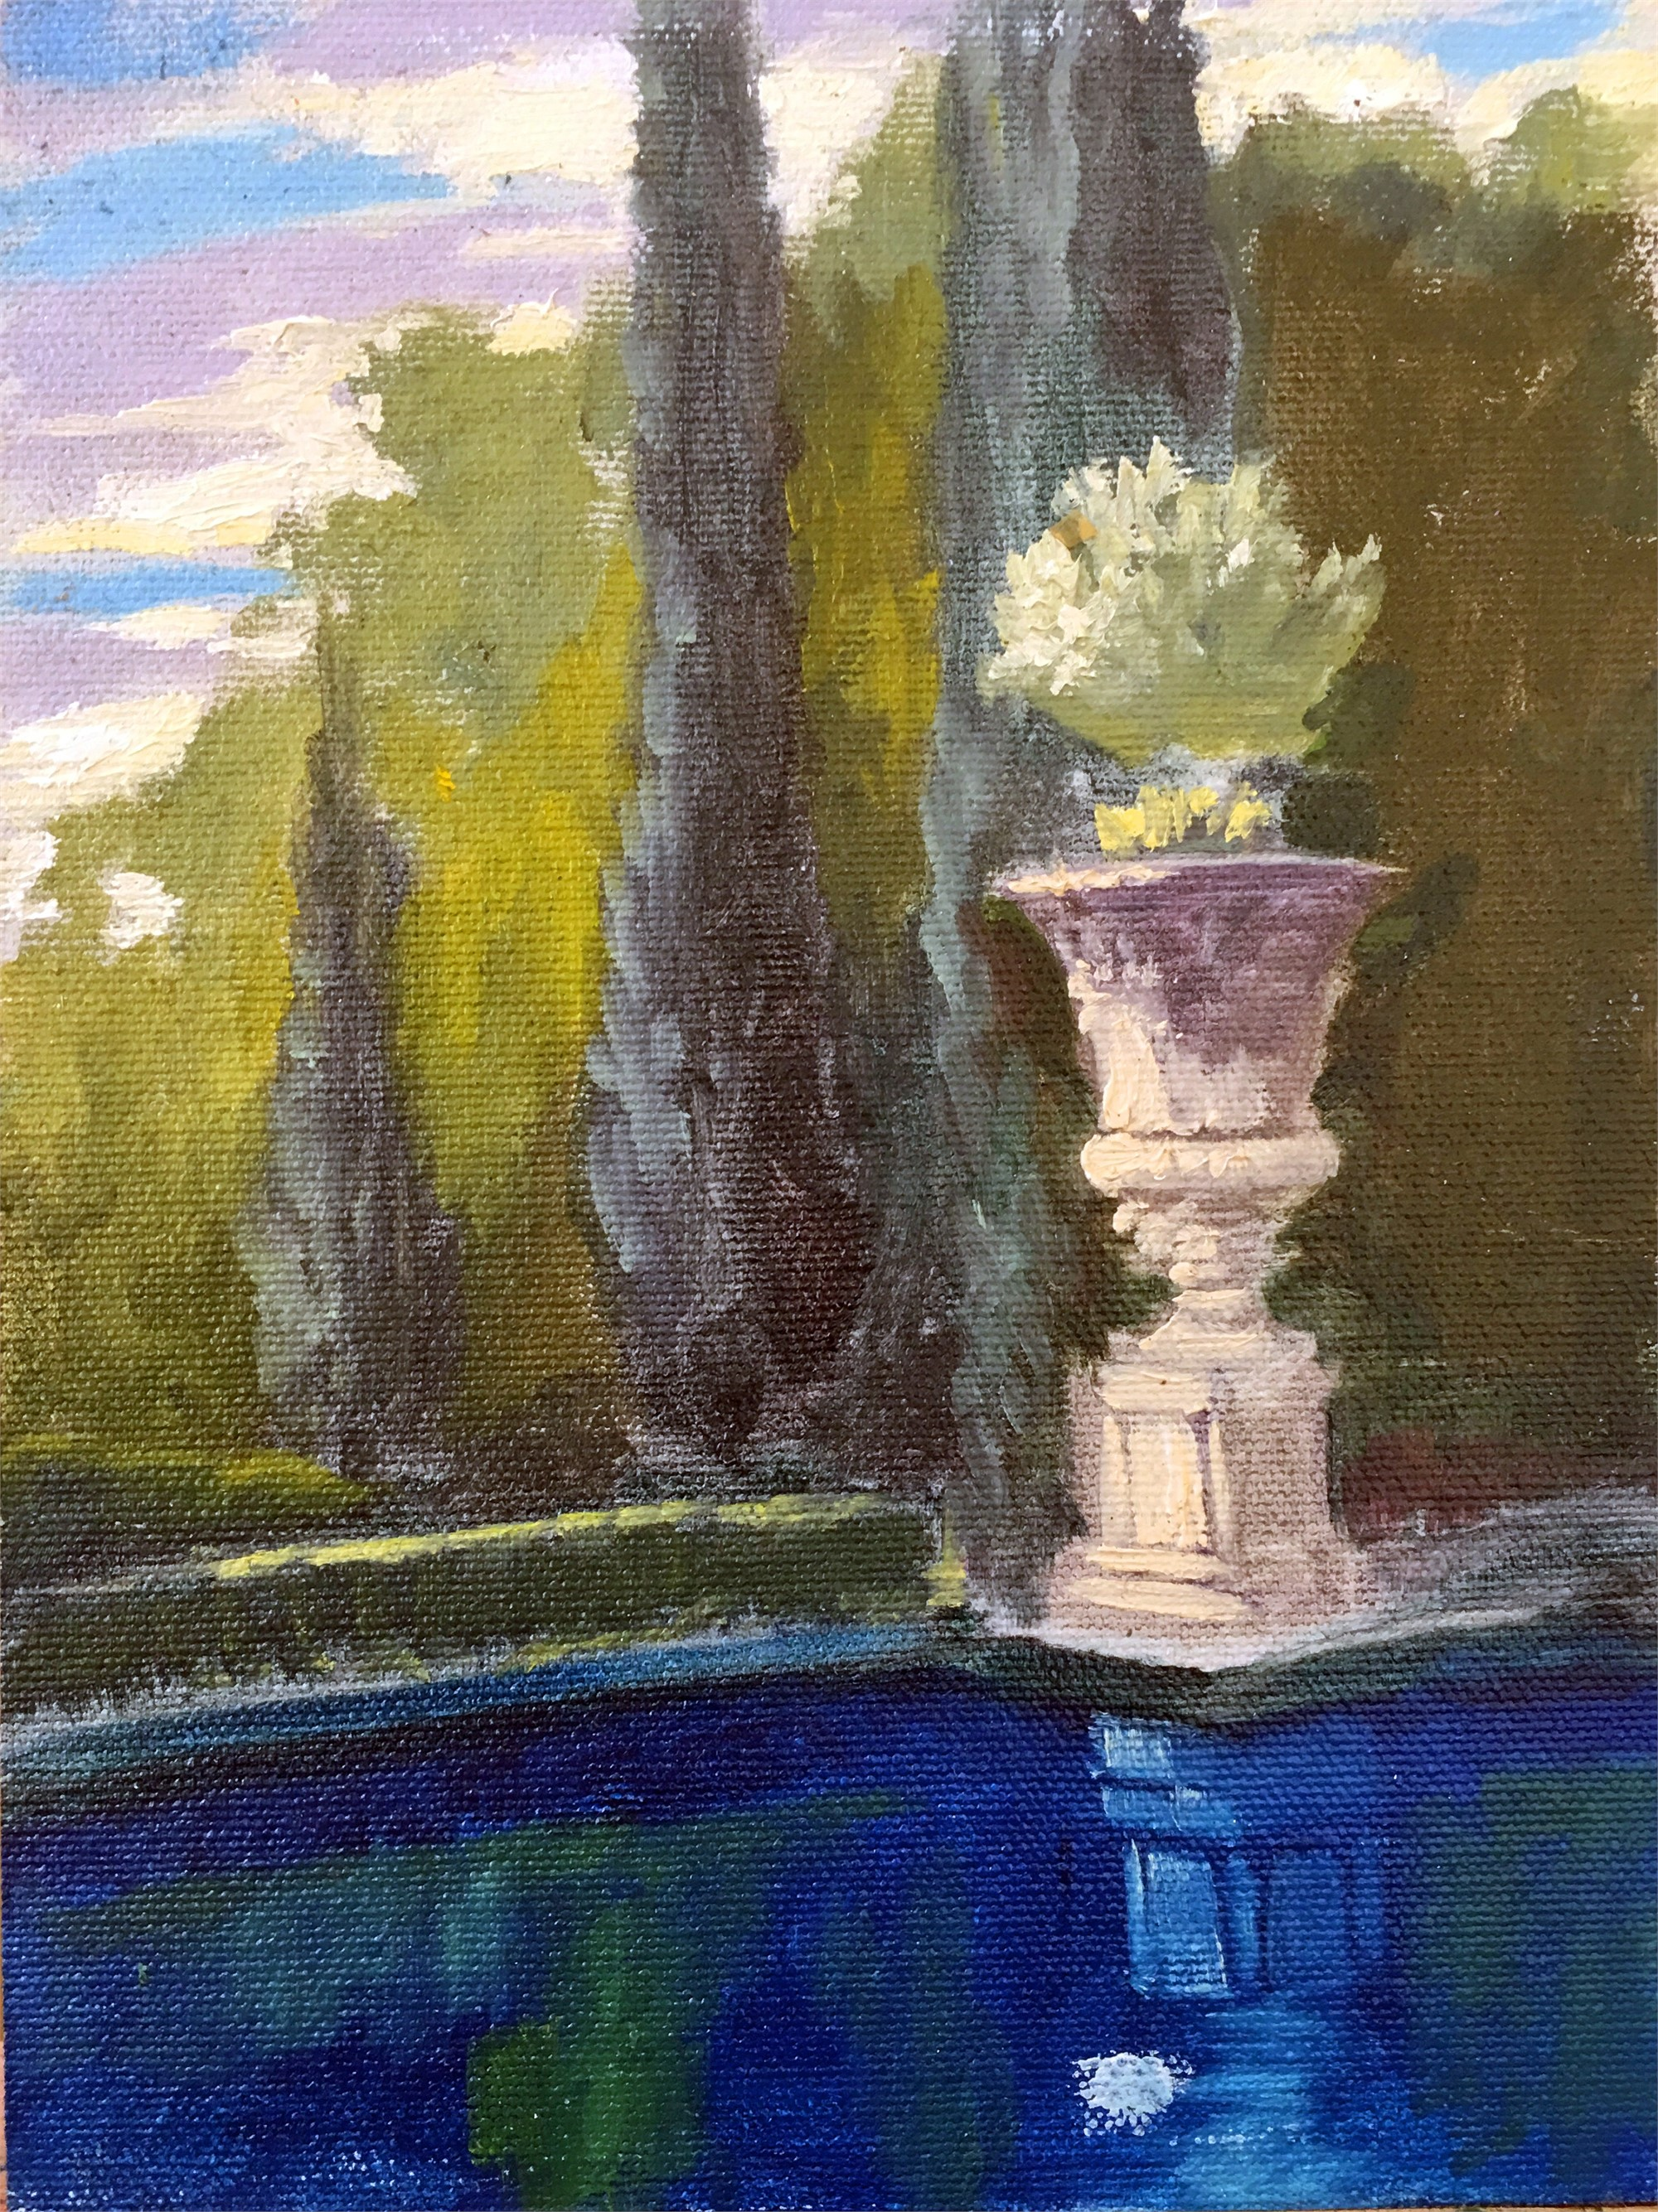 By the Pool, Provence by Nancy Paris Pruden